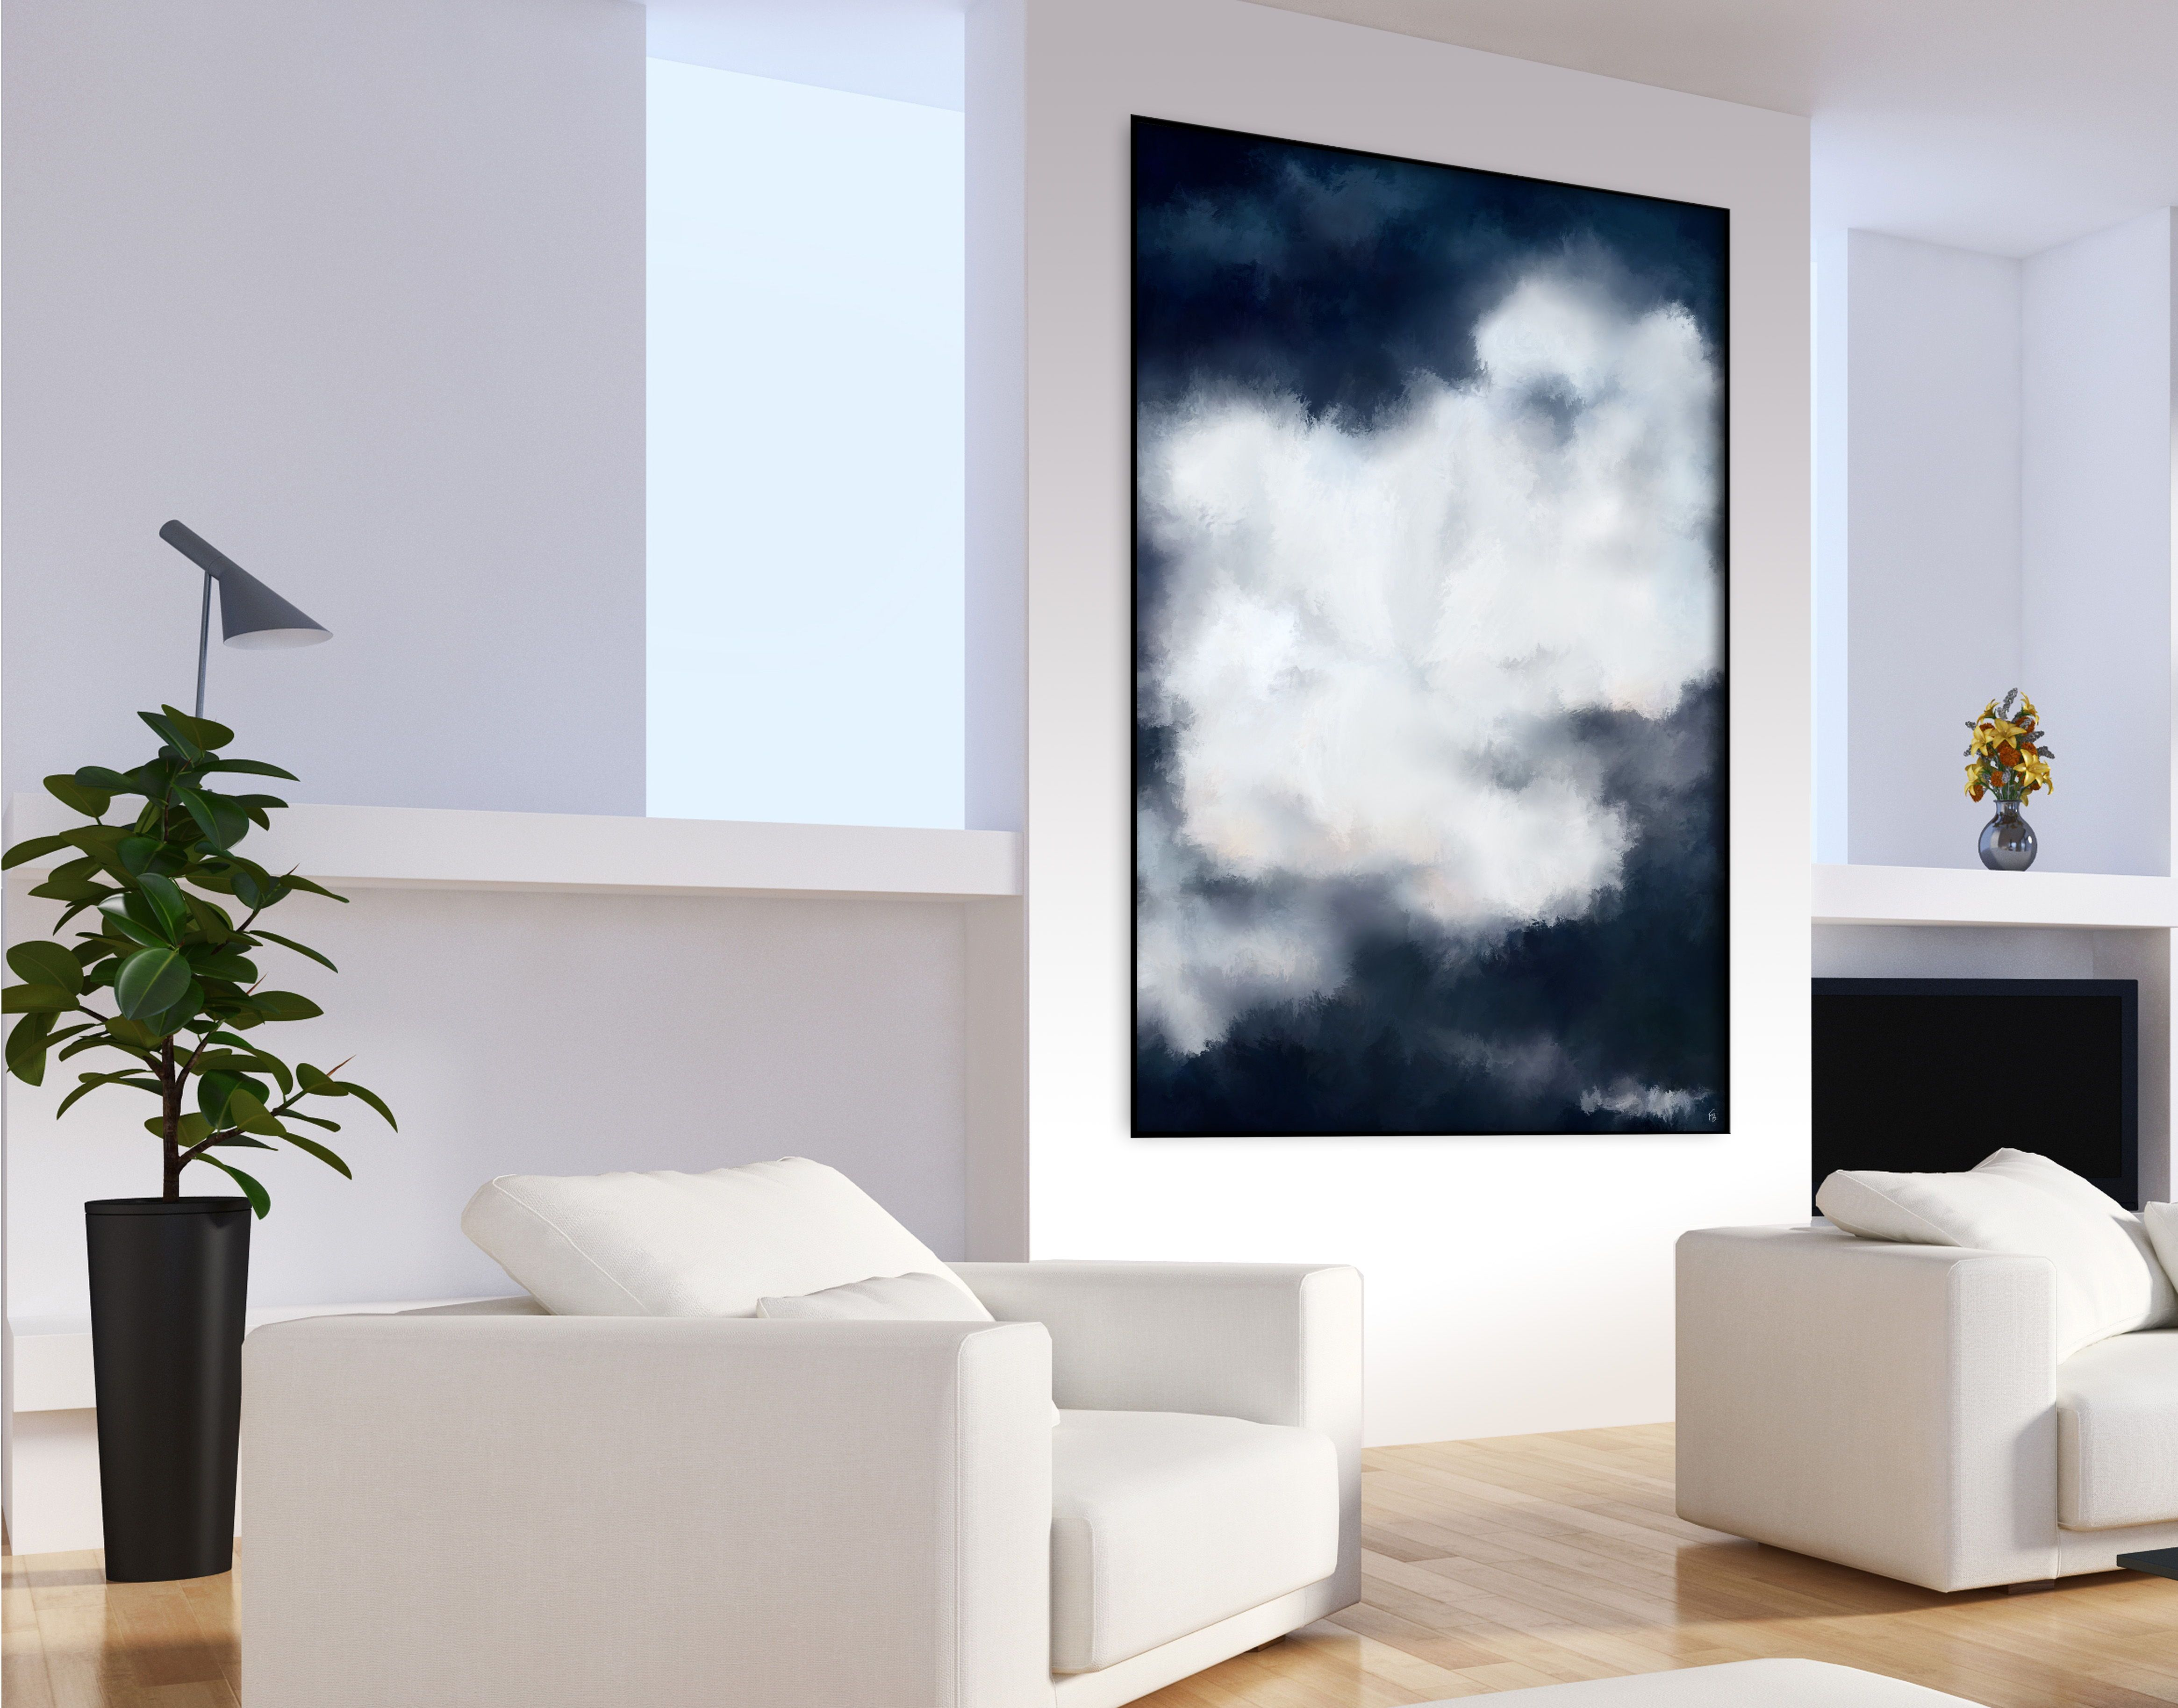 Such a cloudy and moody freedom white abstract painting by fraborart walldecor